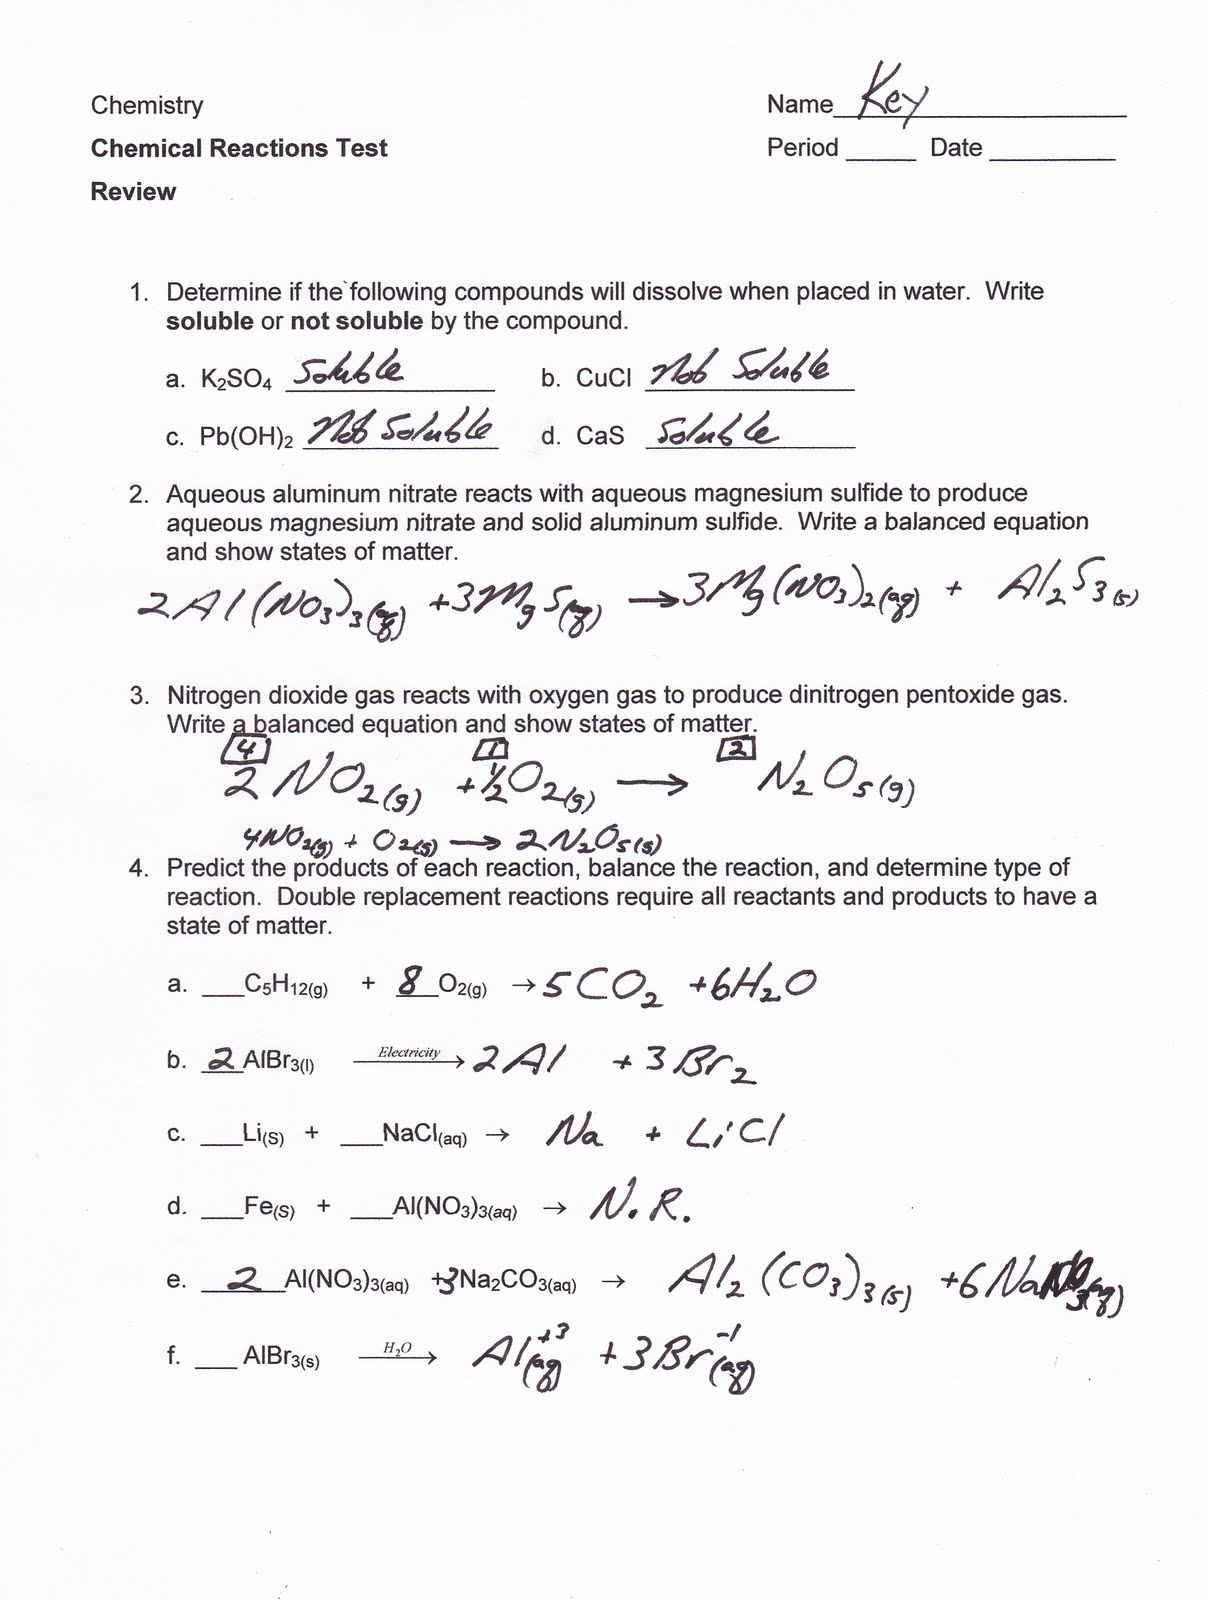 Worksheets Chemistry Review Worksheet Answers mr brueckners chemistry class hhs 2011 12 for those of you experiencing a little difficulty on the balancing chemical reactions worksheet i have some advice possible sticking point